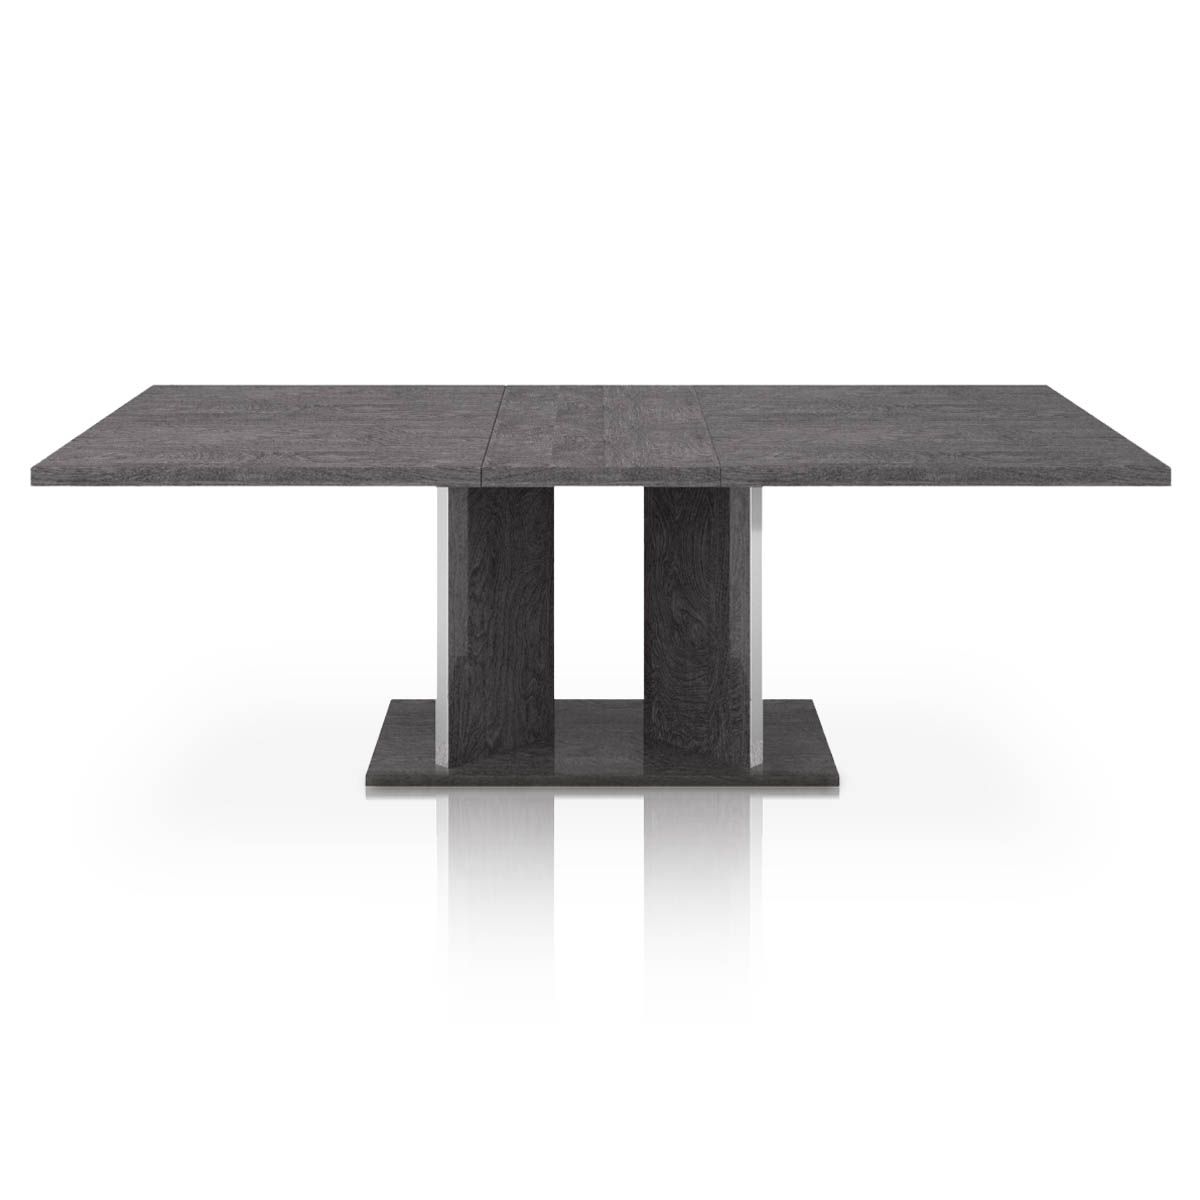 [%100+ [ Extension Dining Room Tables ] | Designs Vineyard Extension Intended For Most Up To Date Chapleau Extension Dining Tables|Chapleau Extension Dining Tables Inside Current 100+ [ Extension Dining Room Tables ] | Designs Vineyard Extension|Popular Chapleau Extension Dining Tables Inside 100+ [ Extension Dining Room Tables ] | Designs Vineyard Extension|Most Recently Released 100+ [ Extension Dining Room Tables ] | Designs Vineyard Extension In Chapleau Extension Dining Tables%] (View 16 of 25)